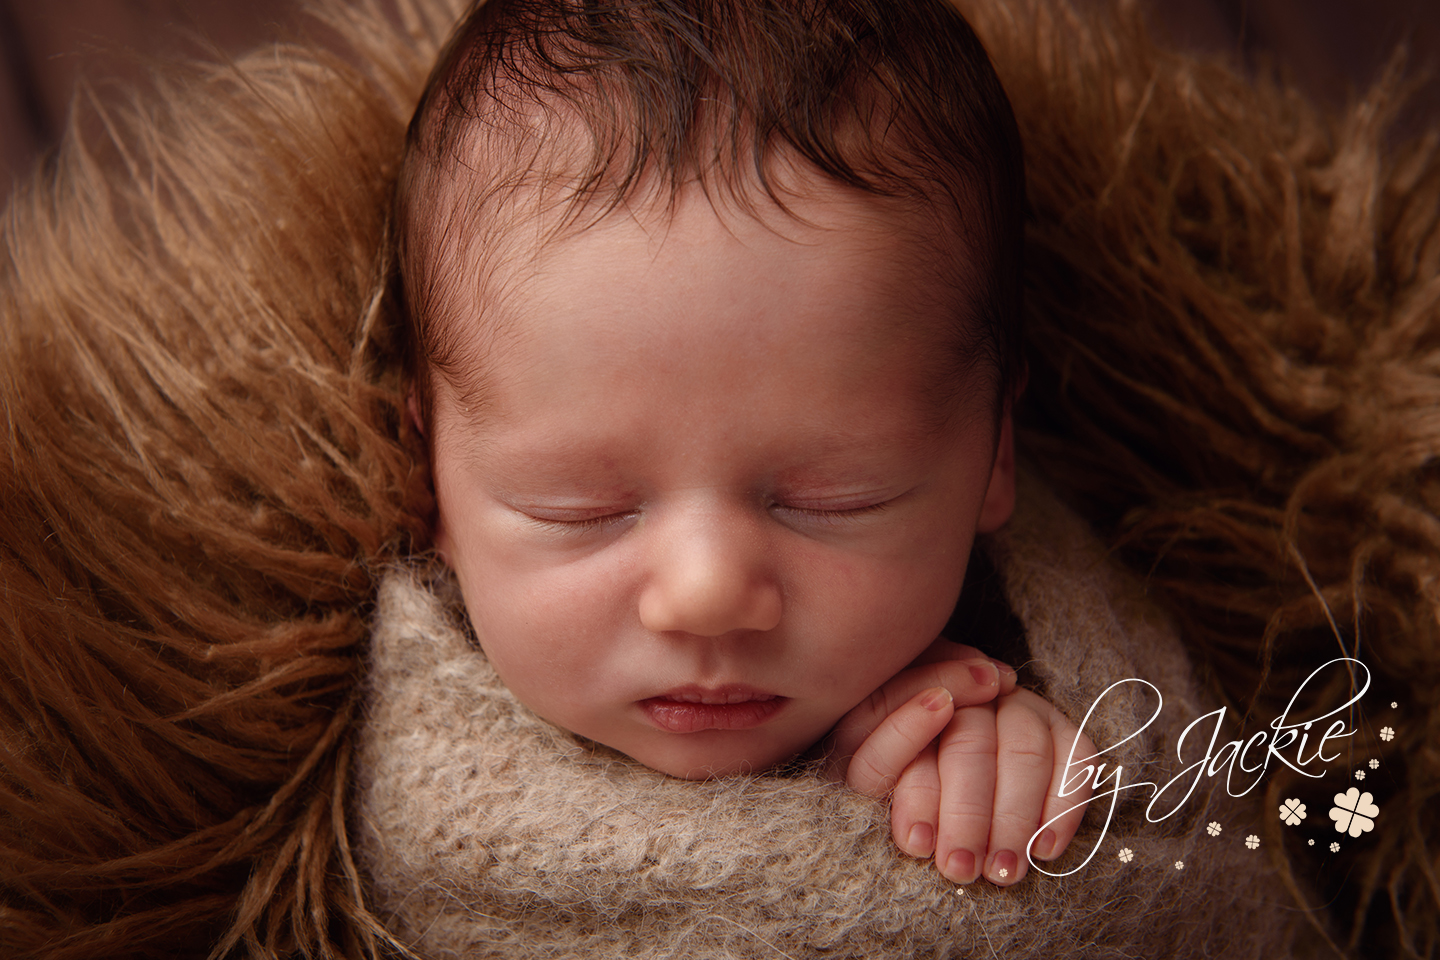 Newborn baby boy image by Babies By Jackie Photography in Market Weighton near York, Pocklington, Beverley, Hessle and Hull, North Yorkshire and East Ridings, UK